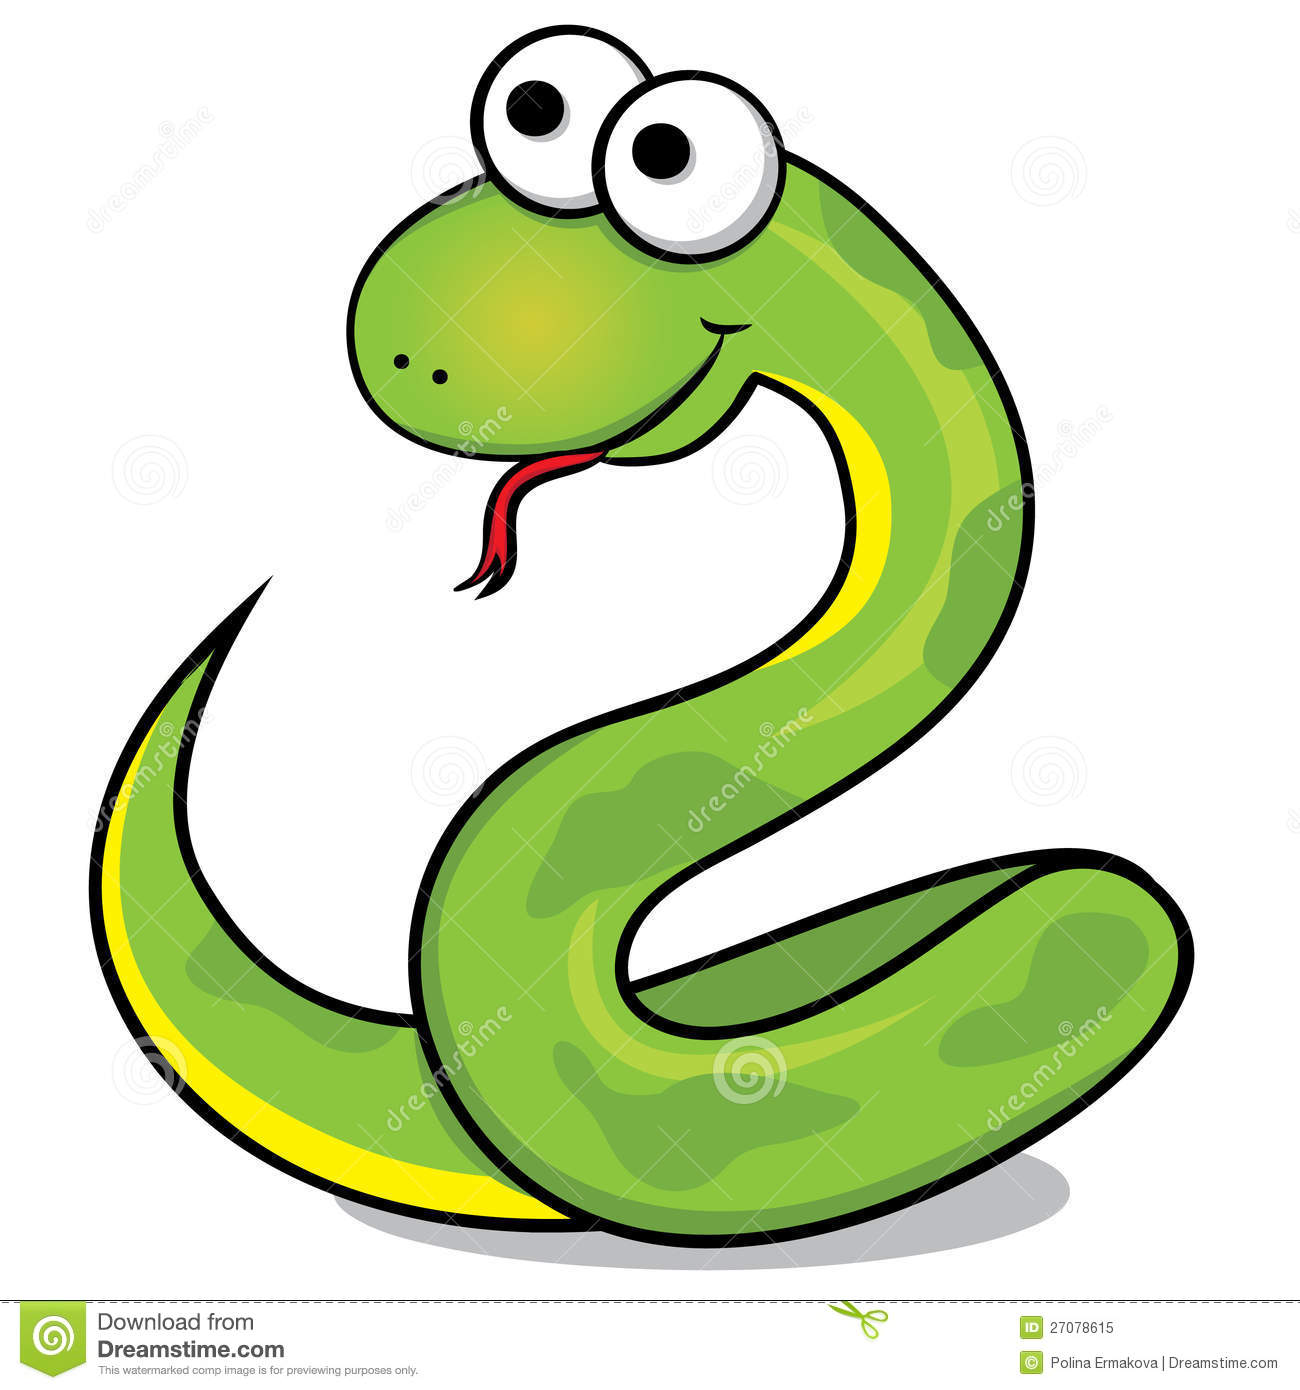 Serpent clipart easy cartoon Search Snake Pictures ced1495 Kids